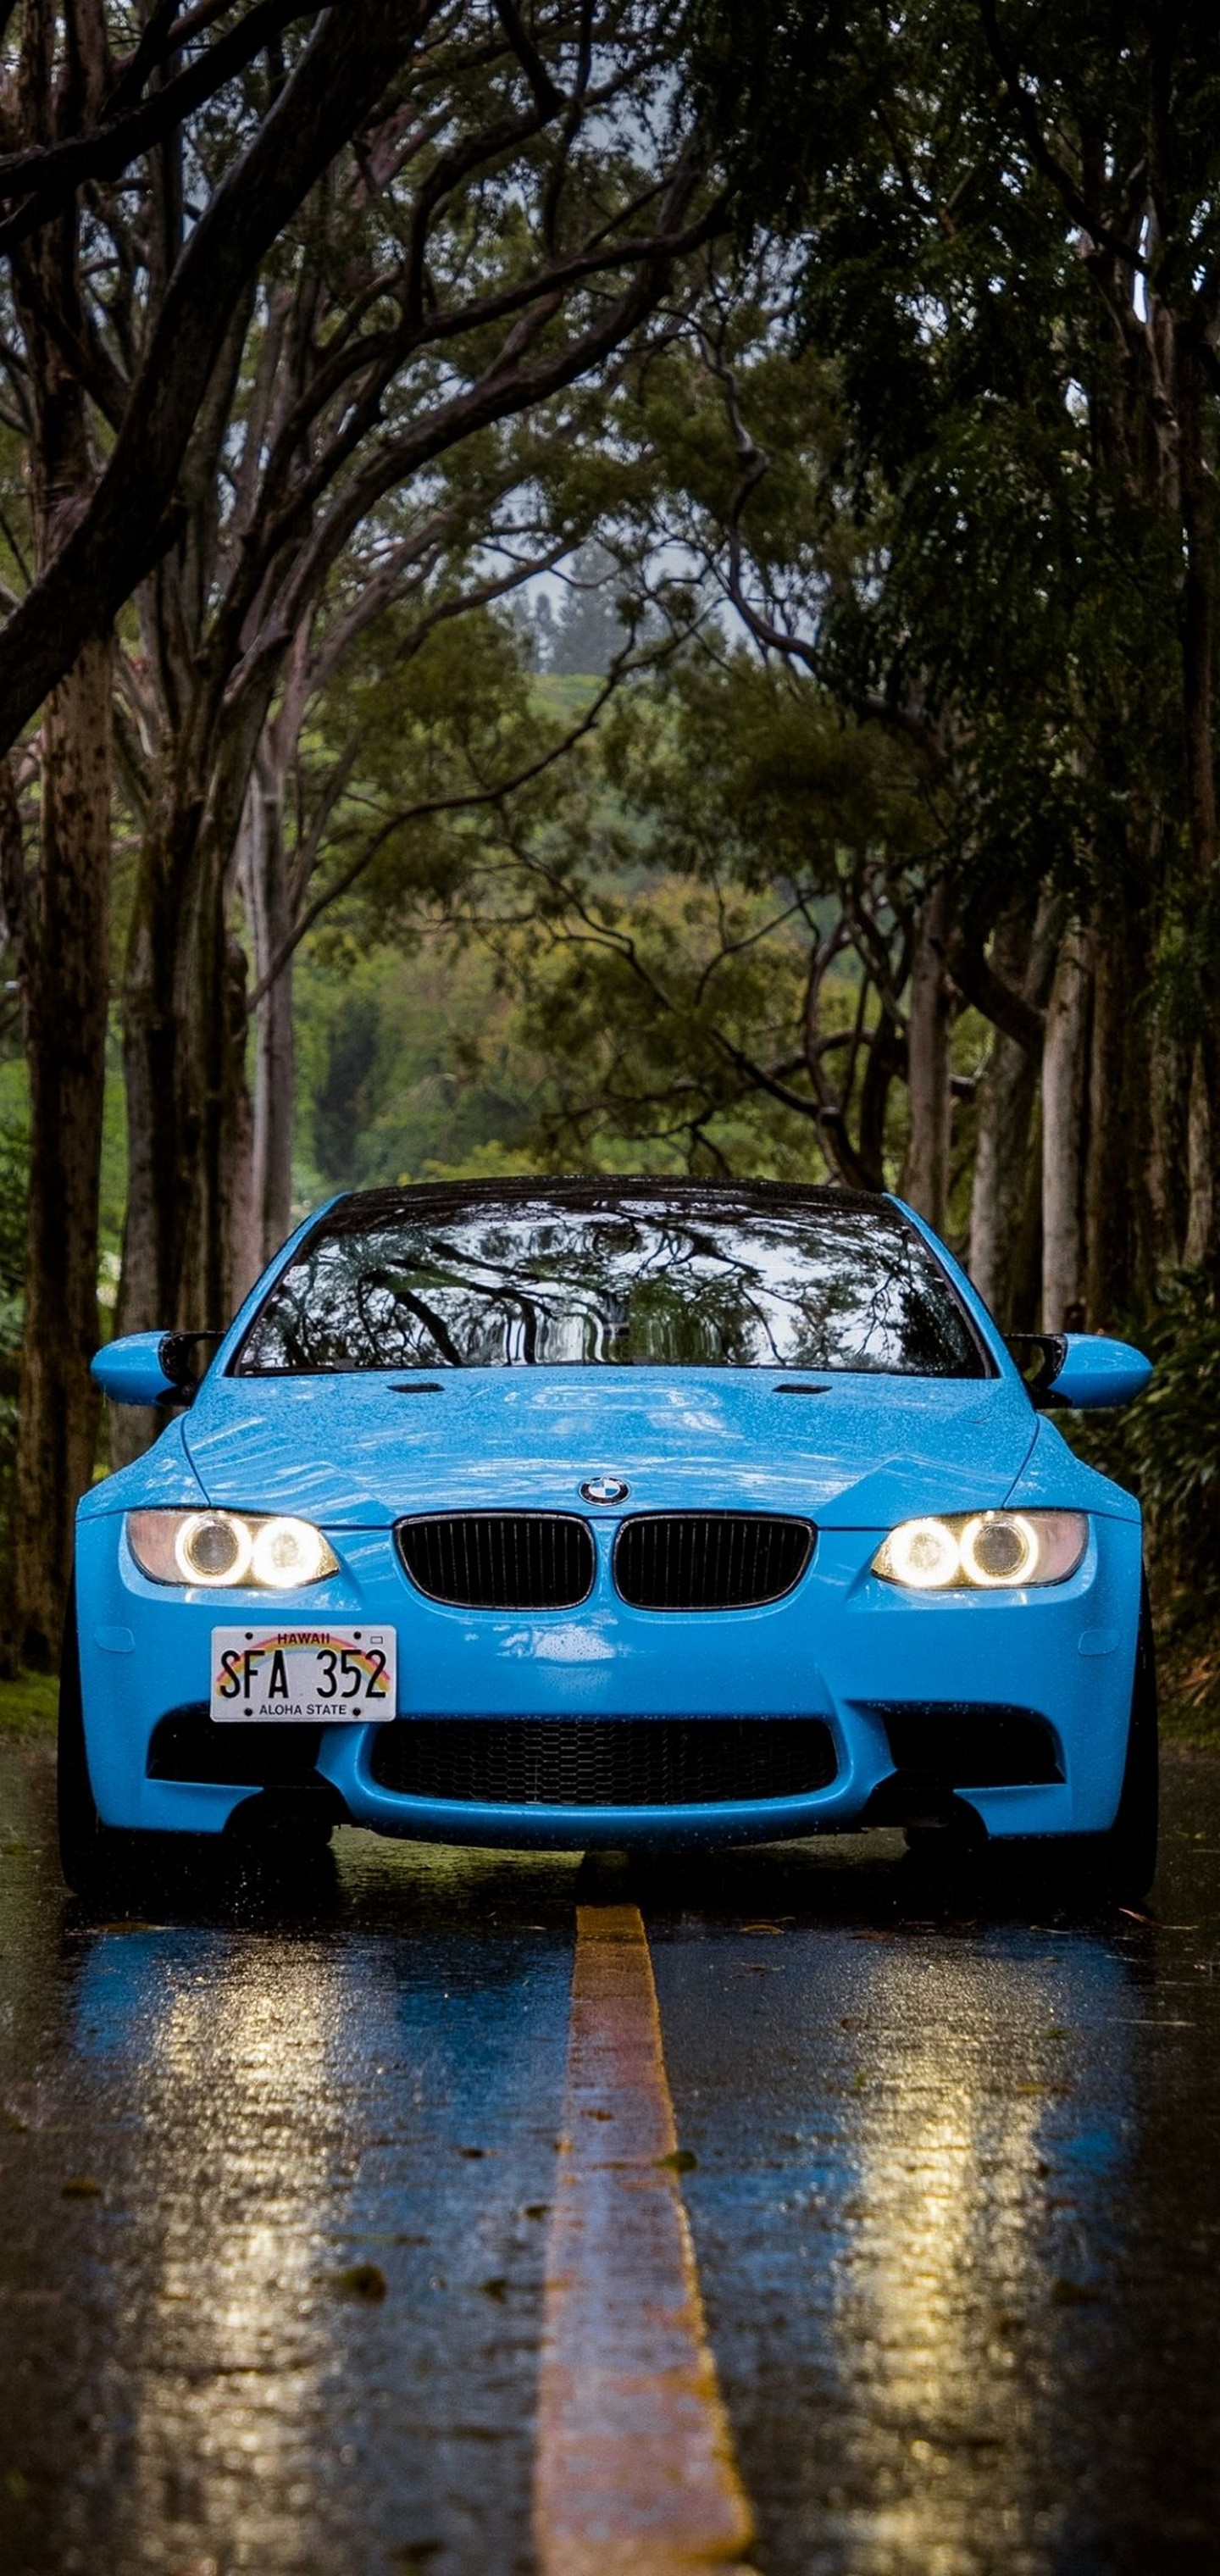 We've gathered more than 5 million images uploaded by our users and sorted them by the most popular ones. Blue Bmw 5 Car Wallpaper Bmw Car 720x1600 Wallpaper Teahub Io